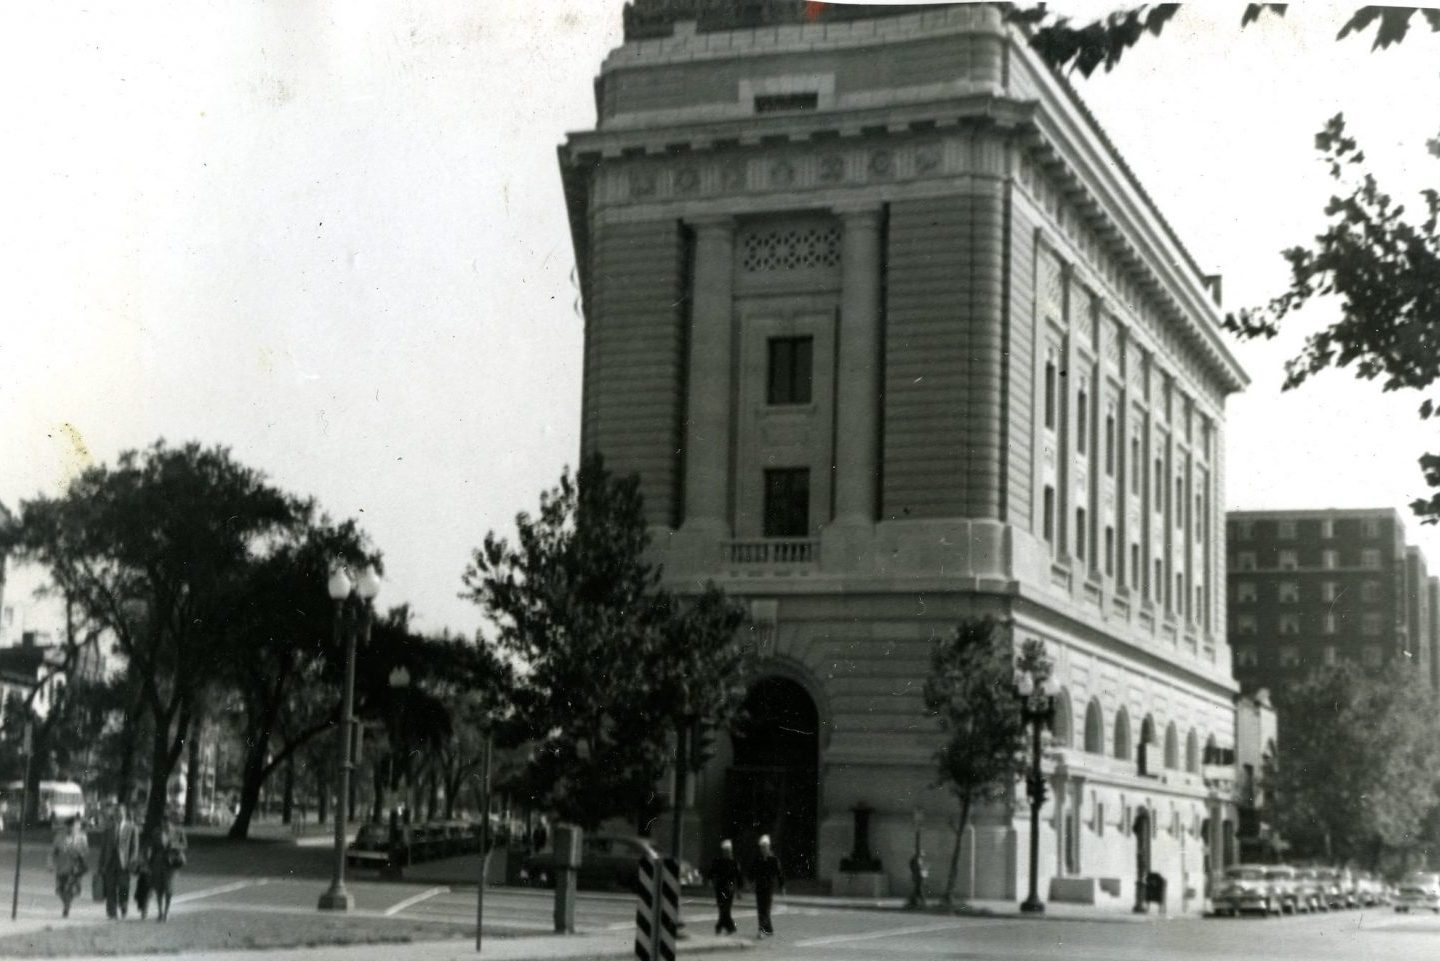 Black-and-white historic photograph of the building exterior with trees in the foreground.